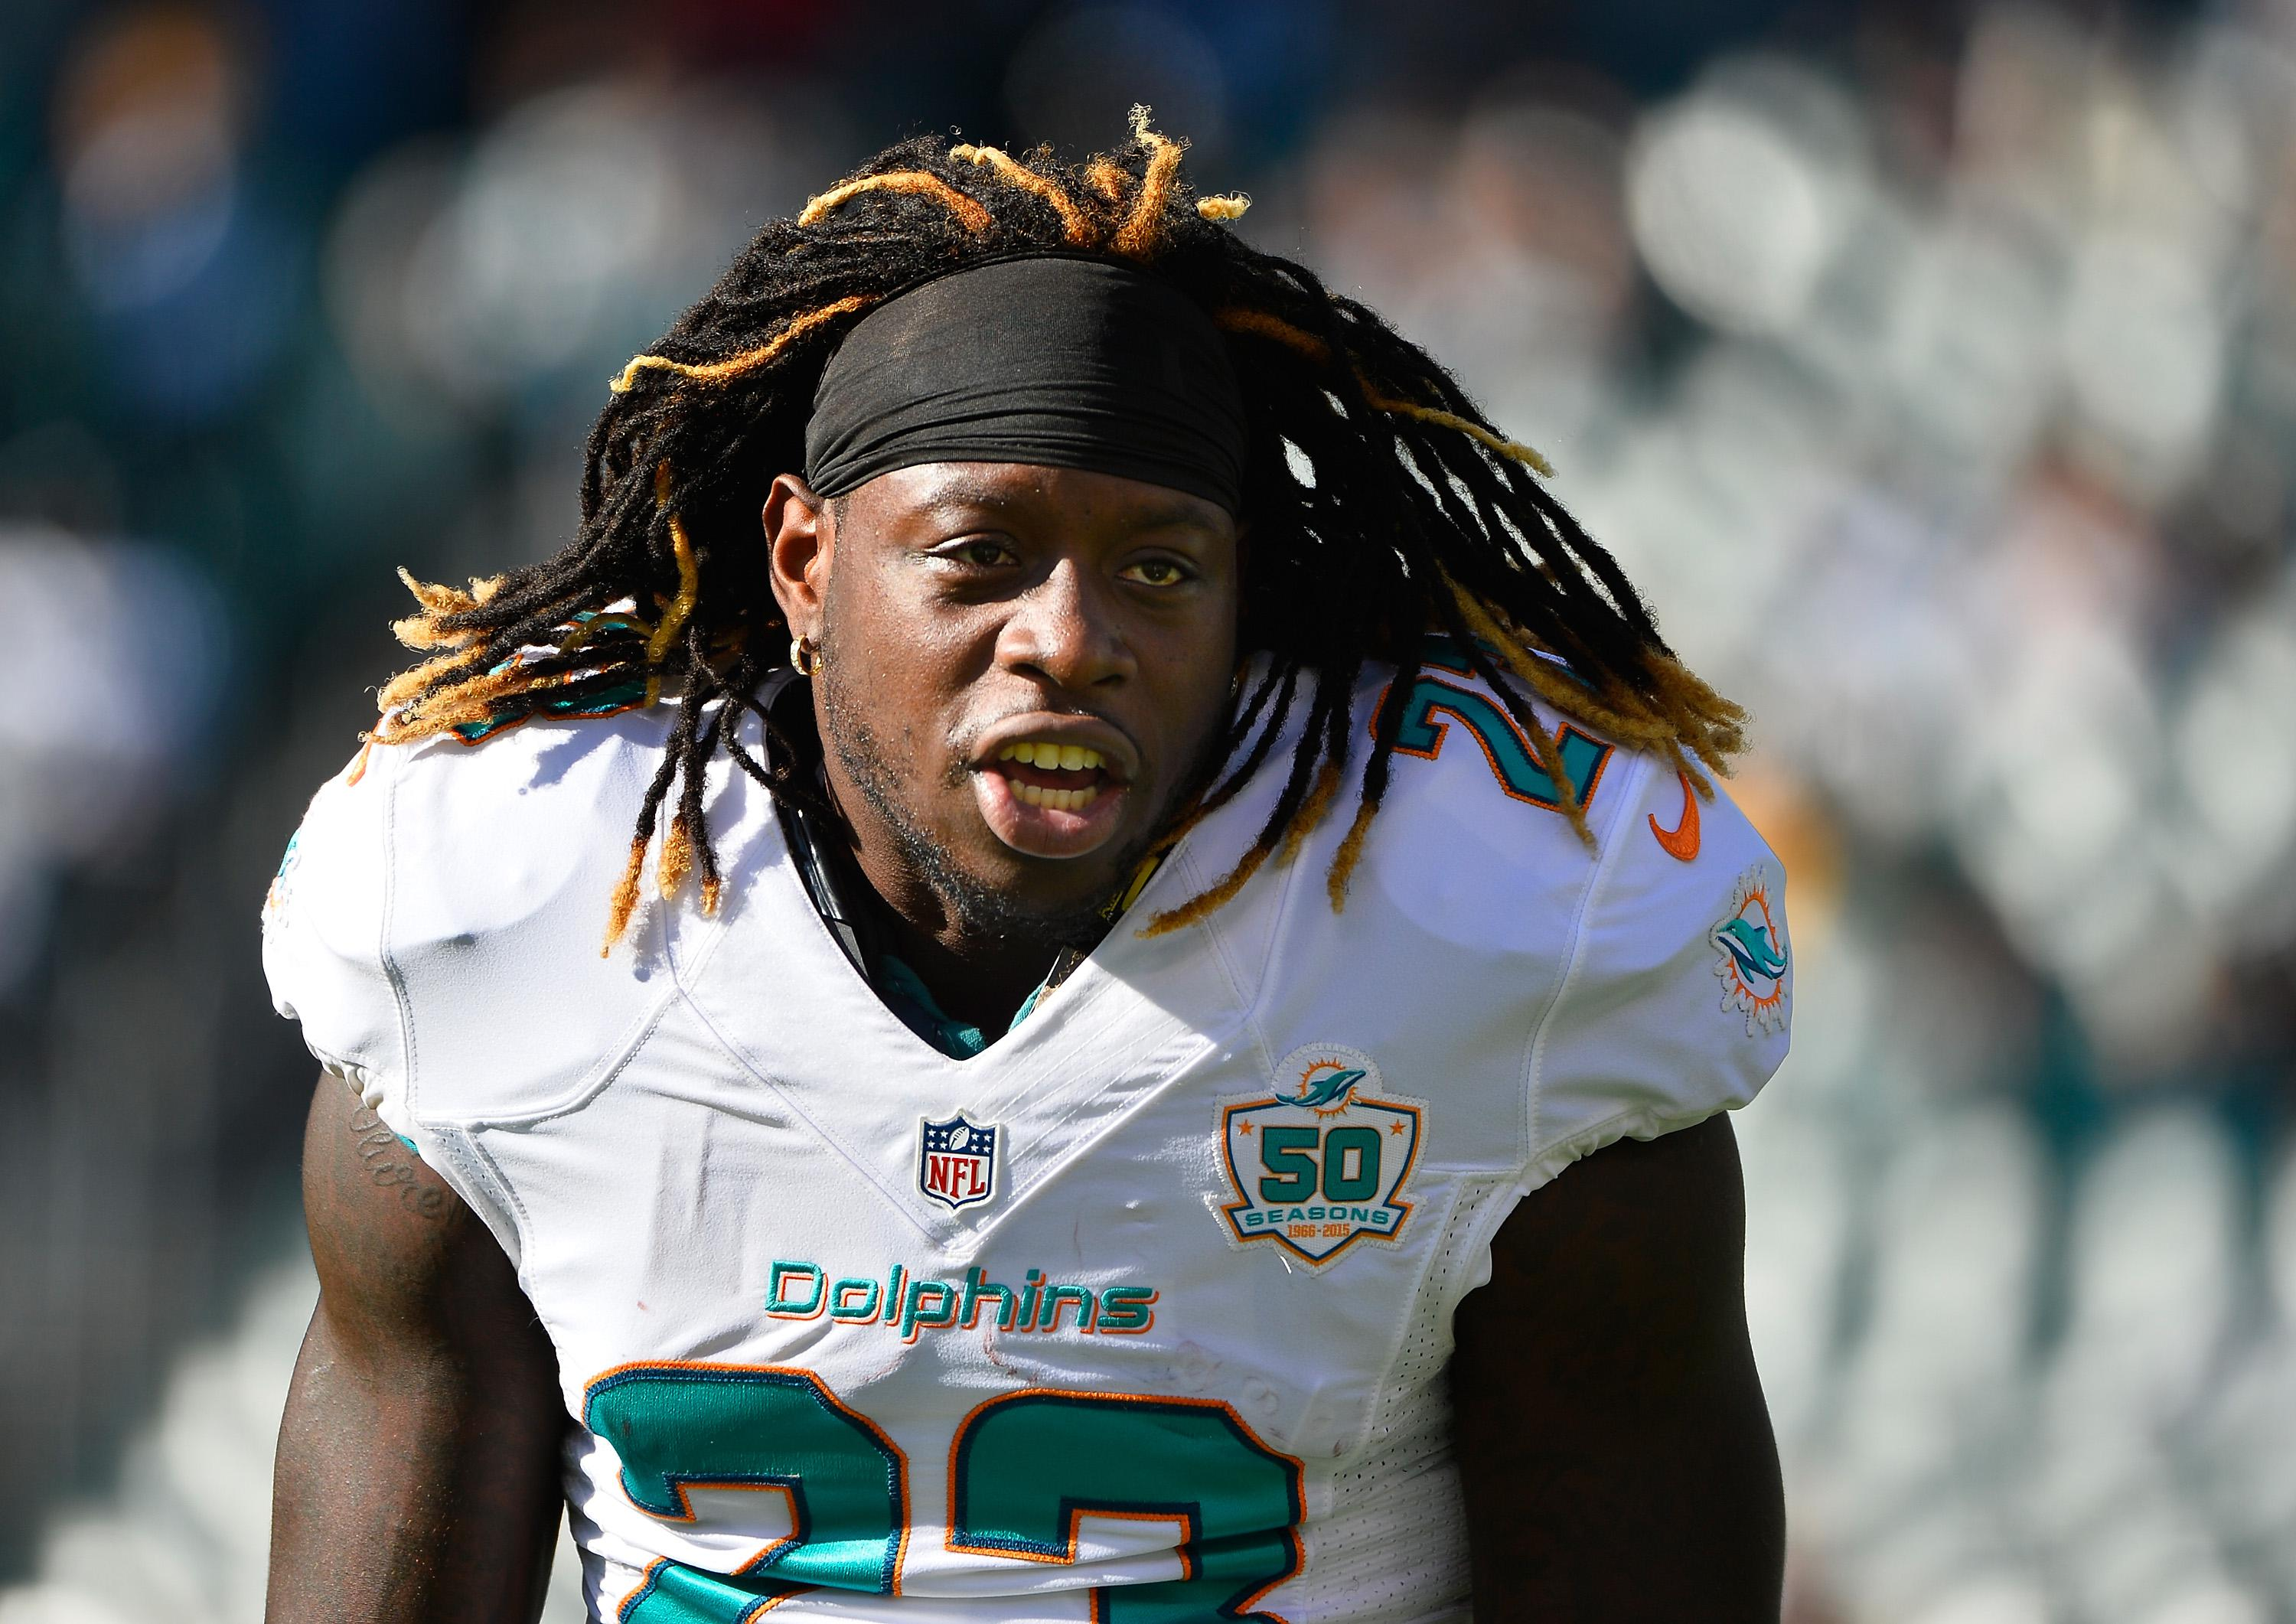 Ajayi first played as an NFL pro at the Miami Dolphins